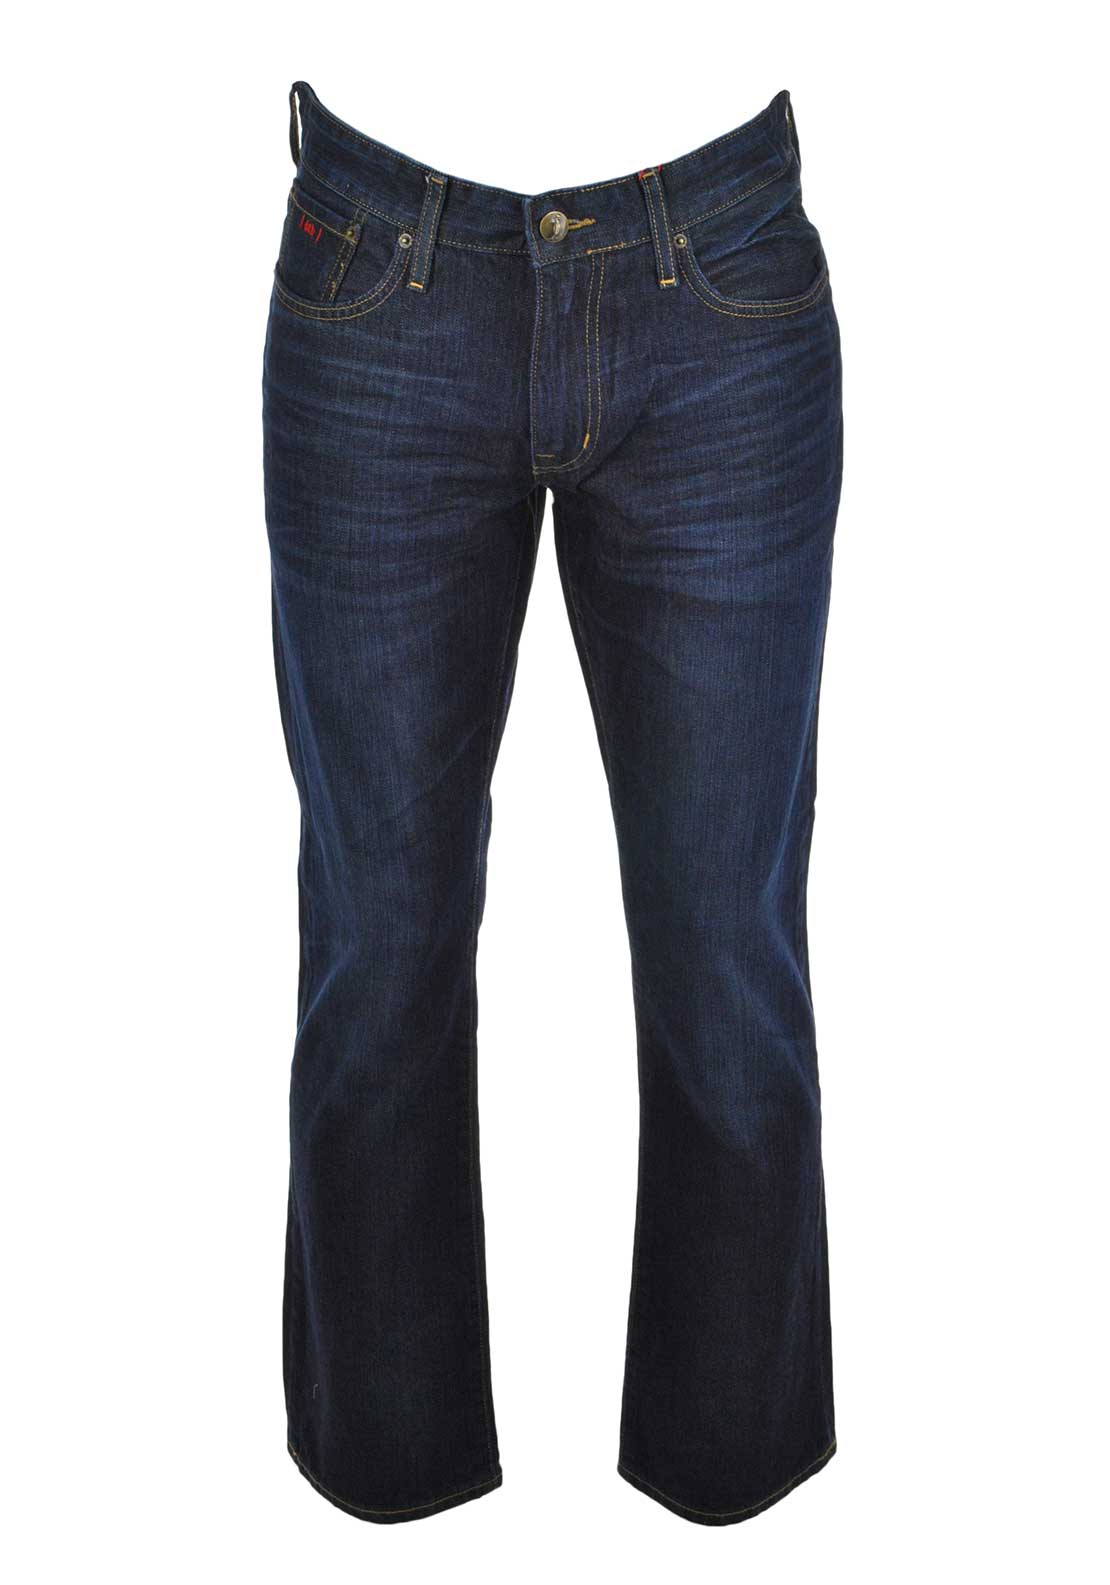 6TH Sense Mens Fred Bootcut Jean, Mid Blue